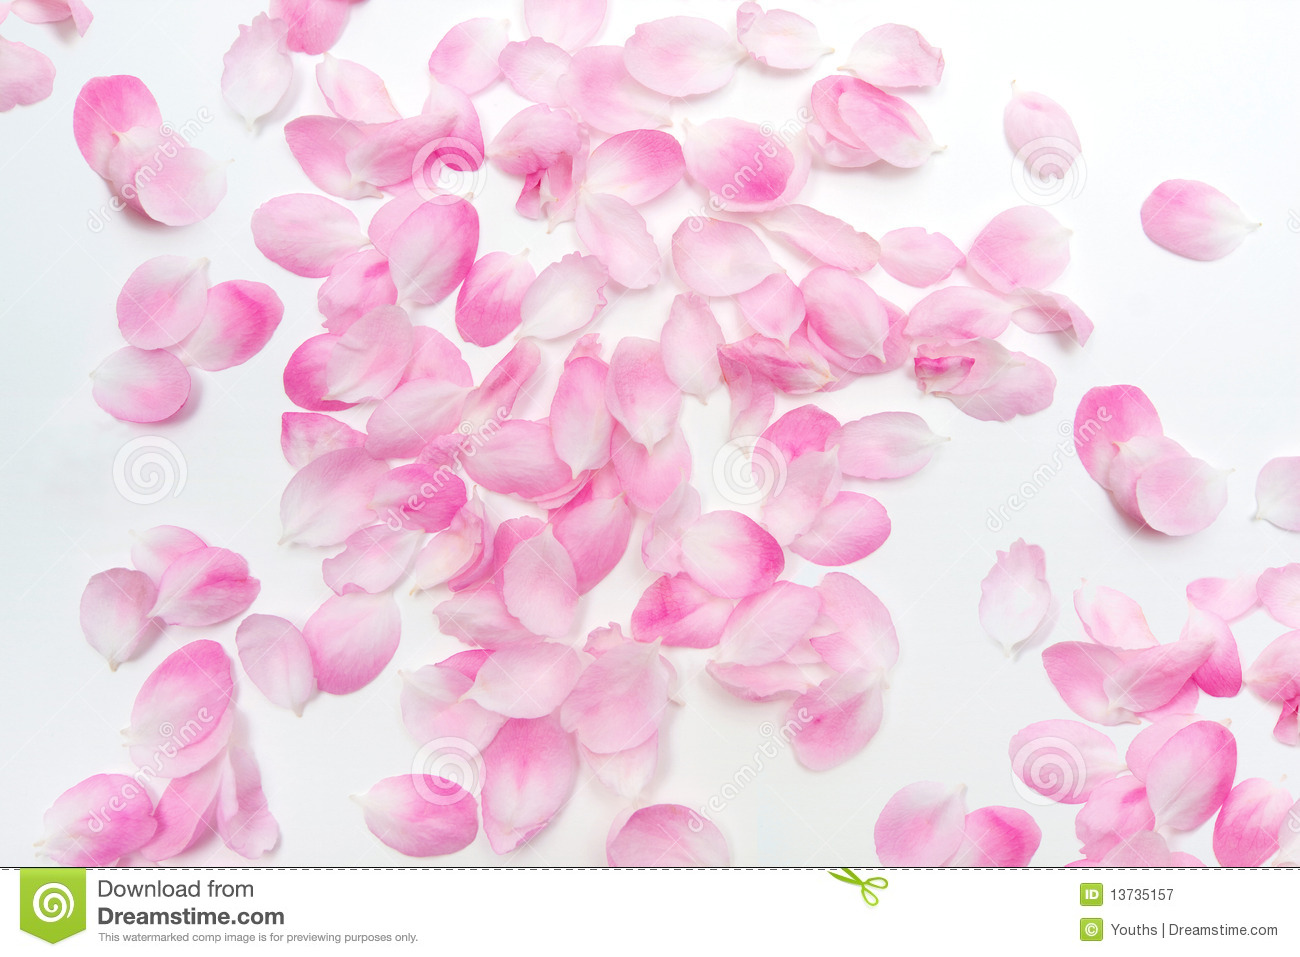 Free Falling In Love Wallpaper Pink Petals Royalty Free Stock Photography Image 13735157